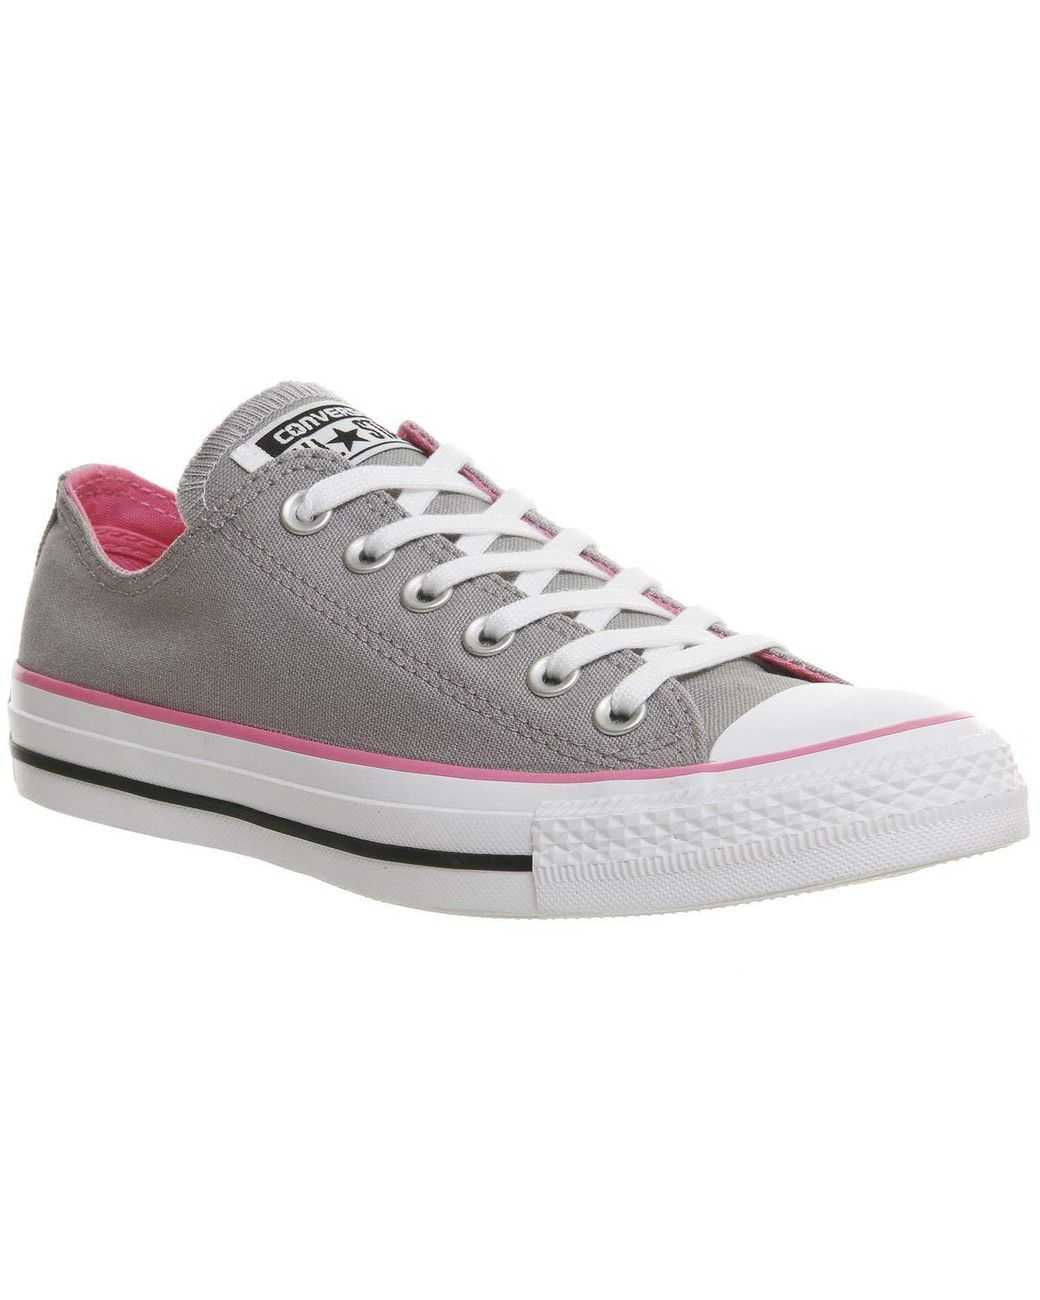 Converse Canvas All Star Low Grey Pink